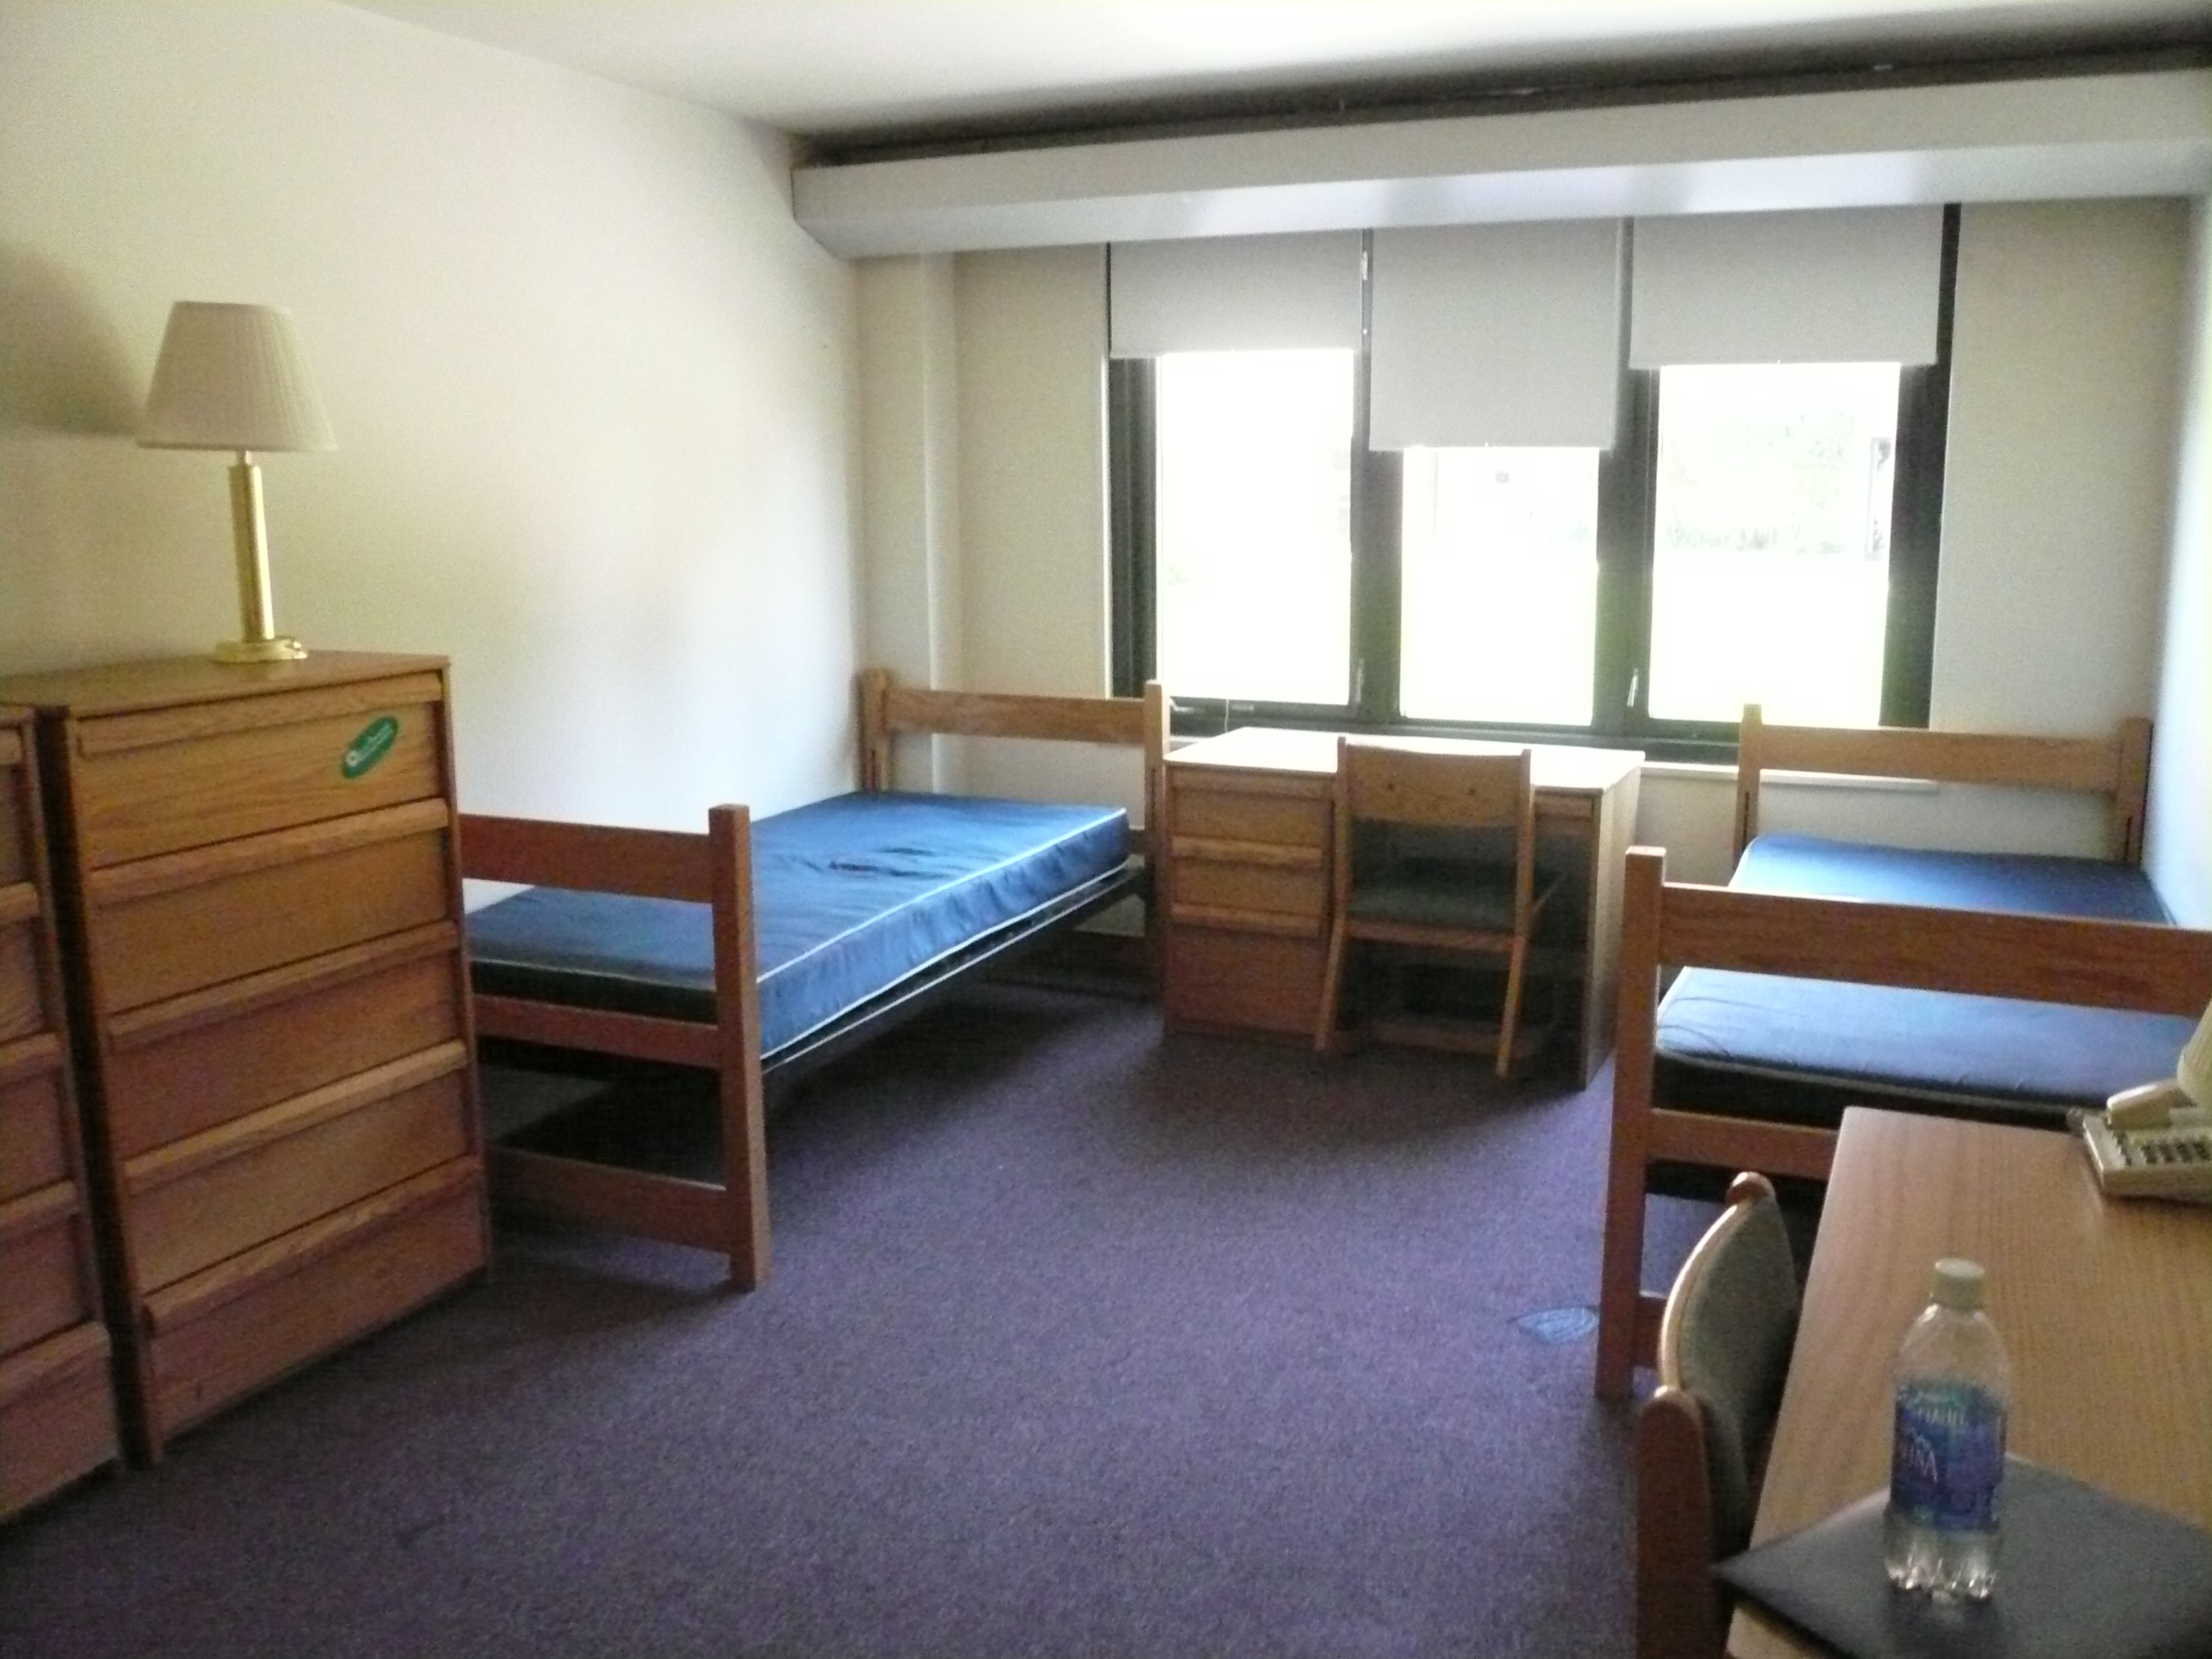 Dorm Room Dimensions Msu